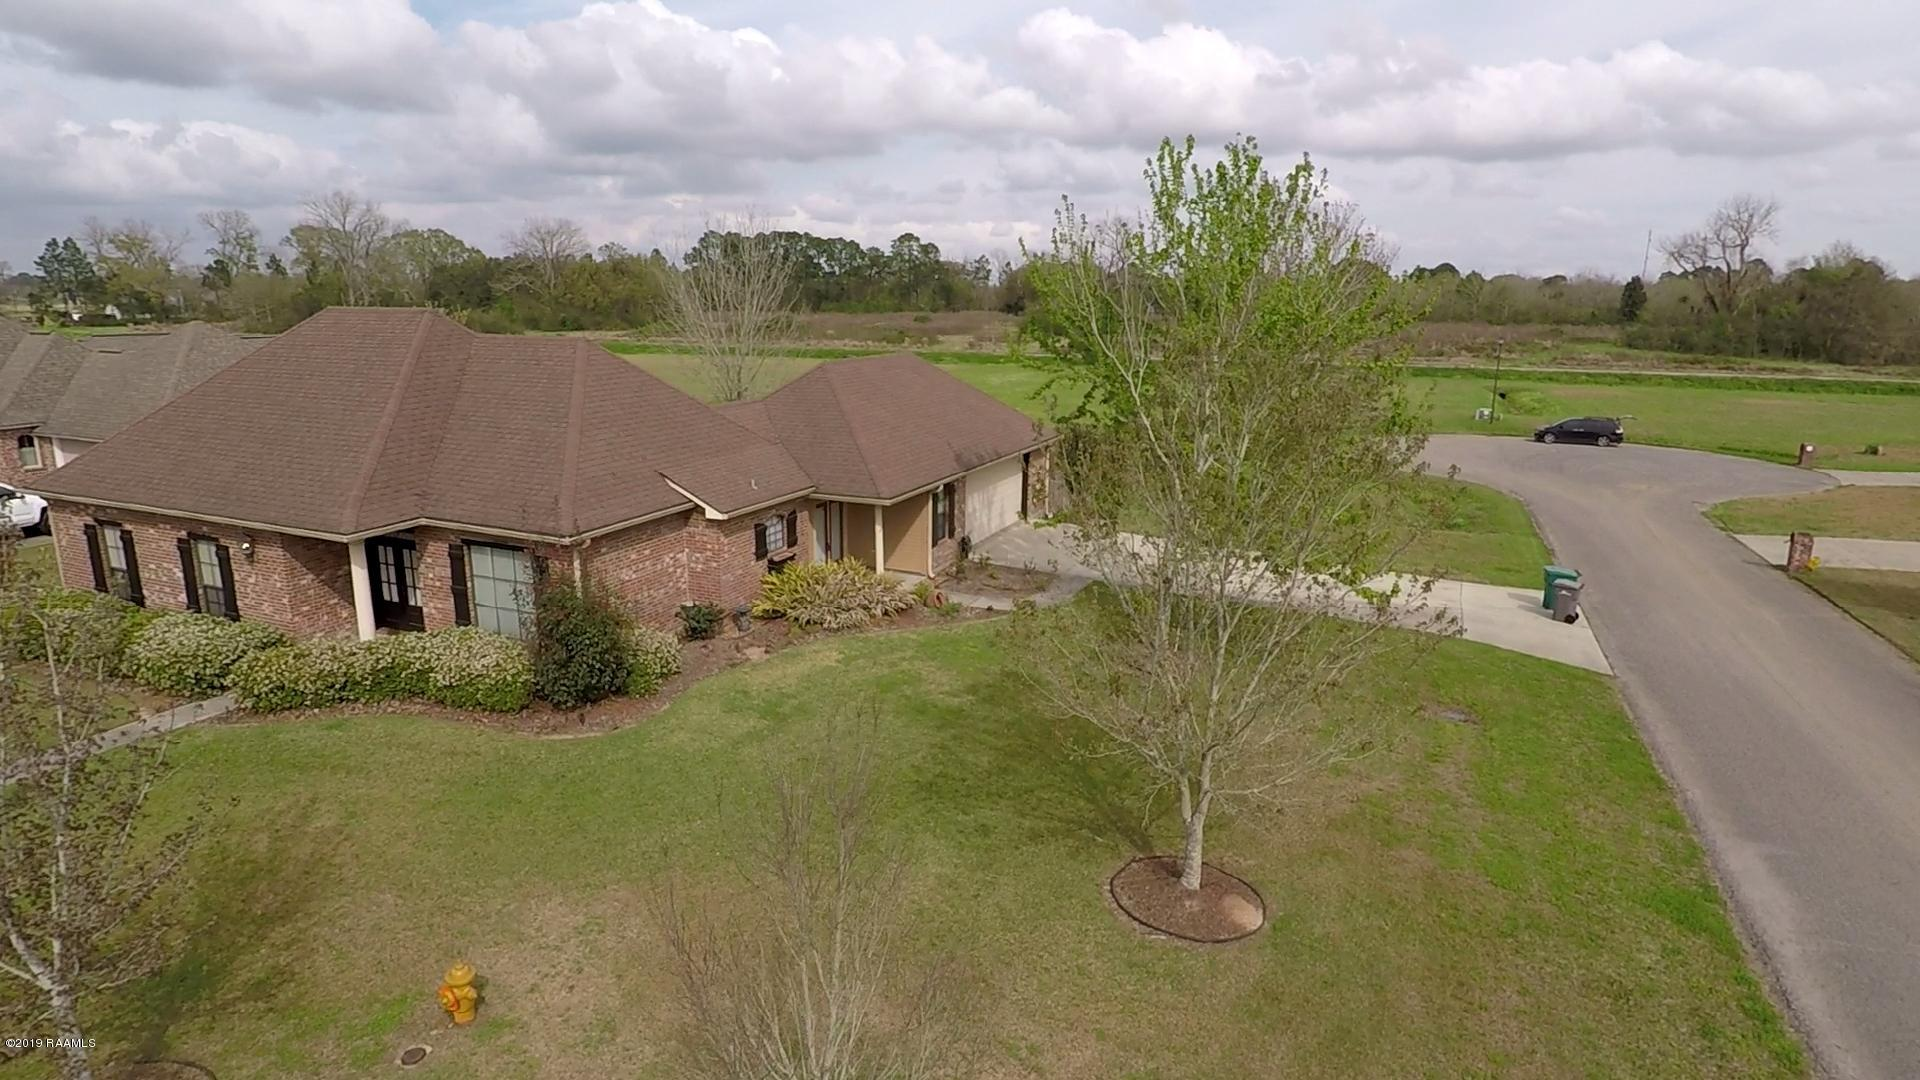 100 Hanna Drive, Youngsville, LA 70592 Photo #42